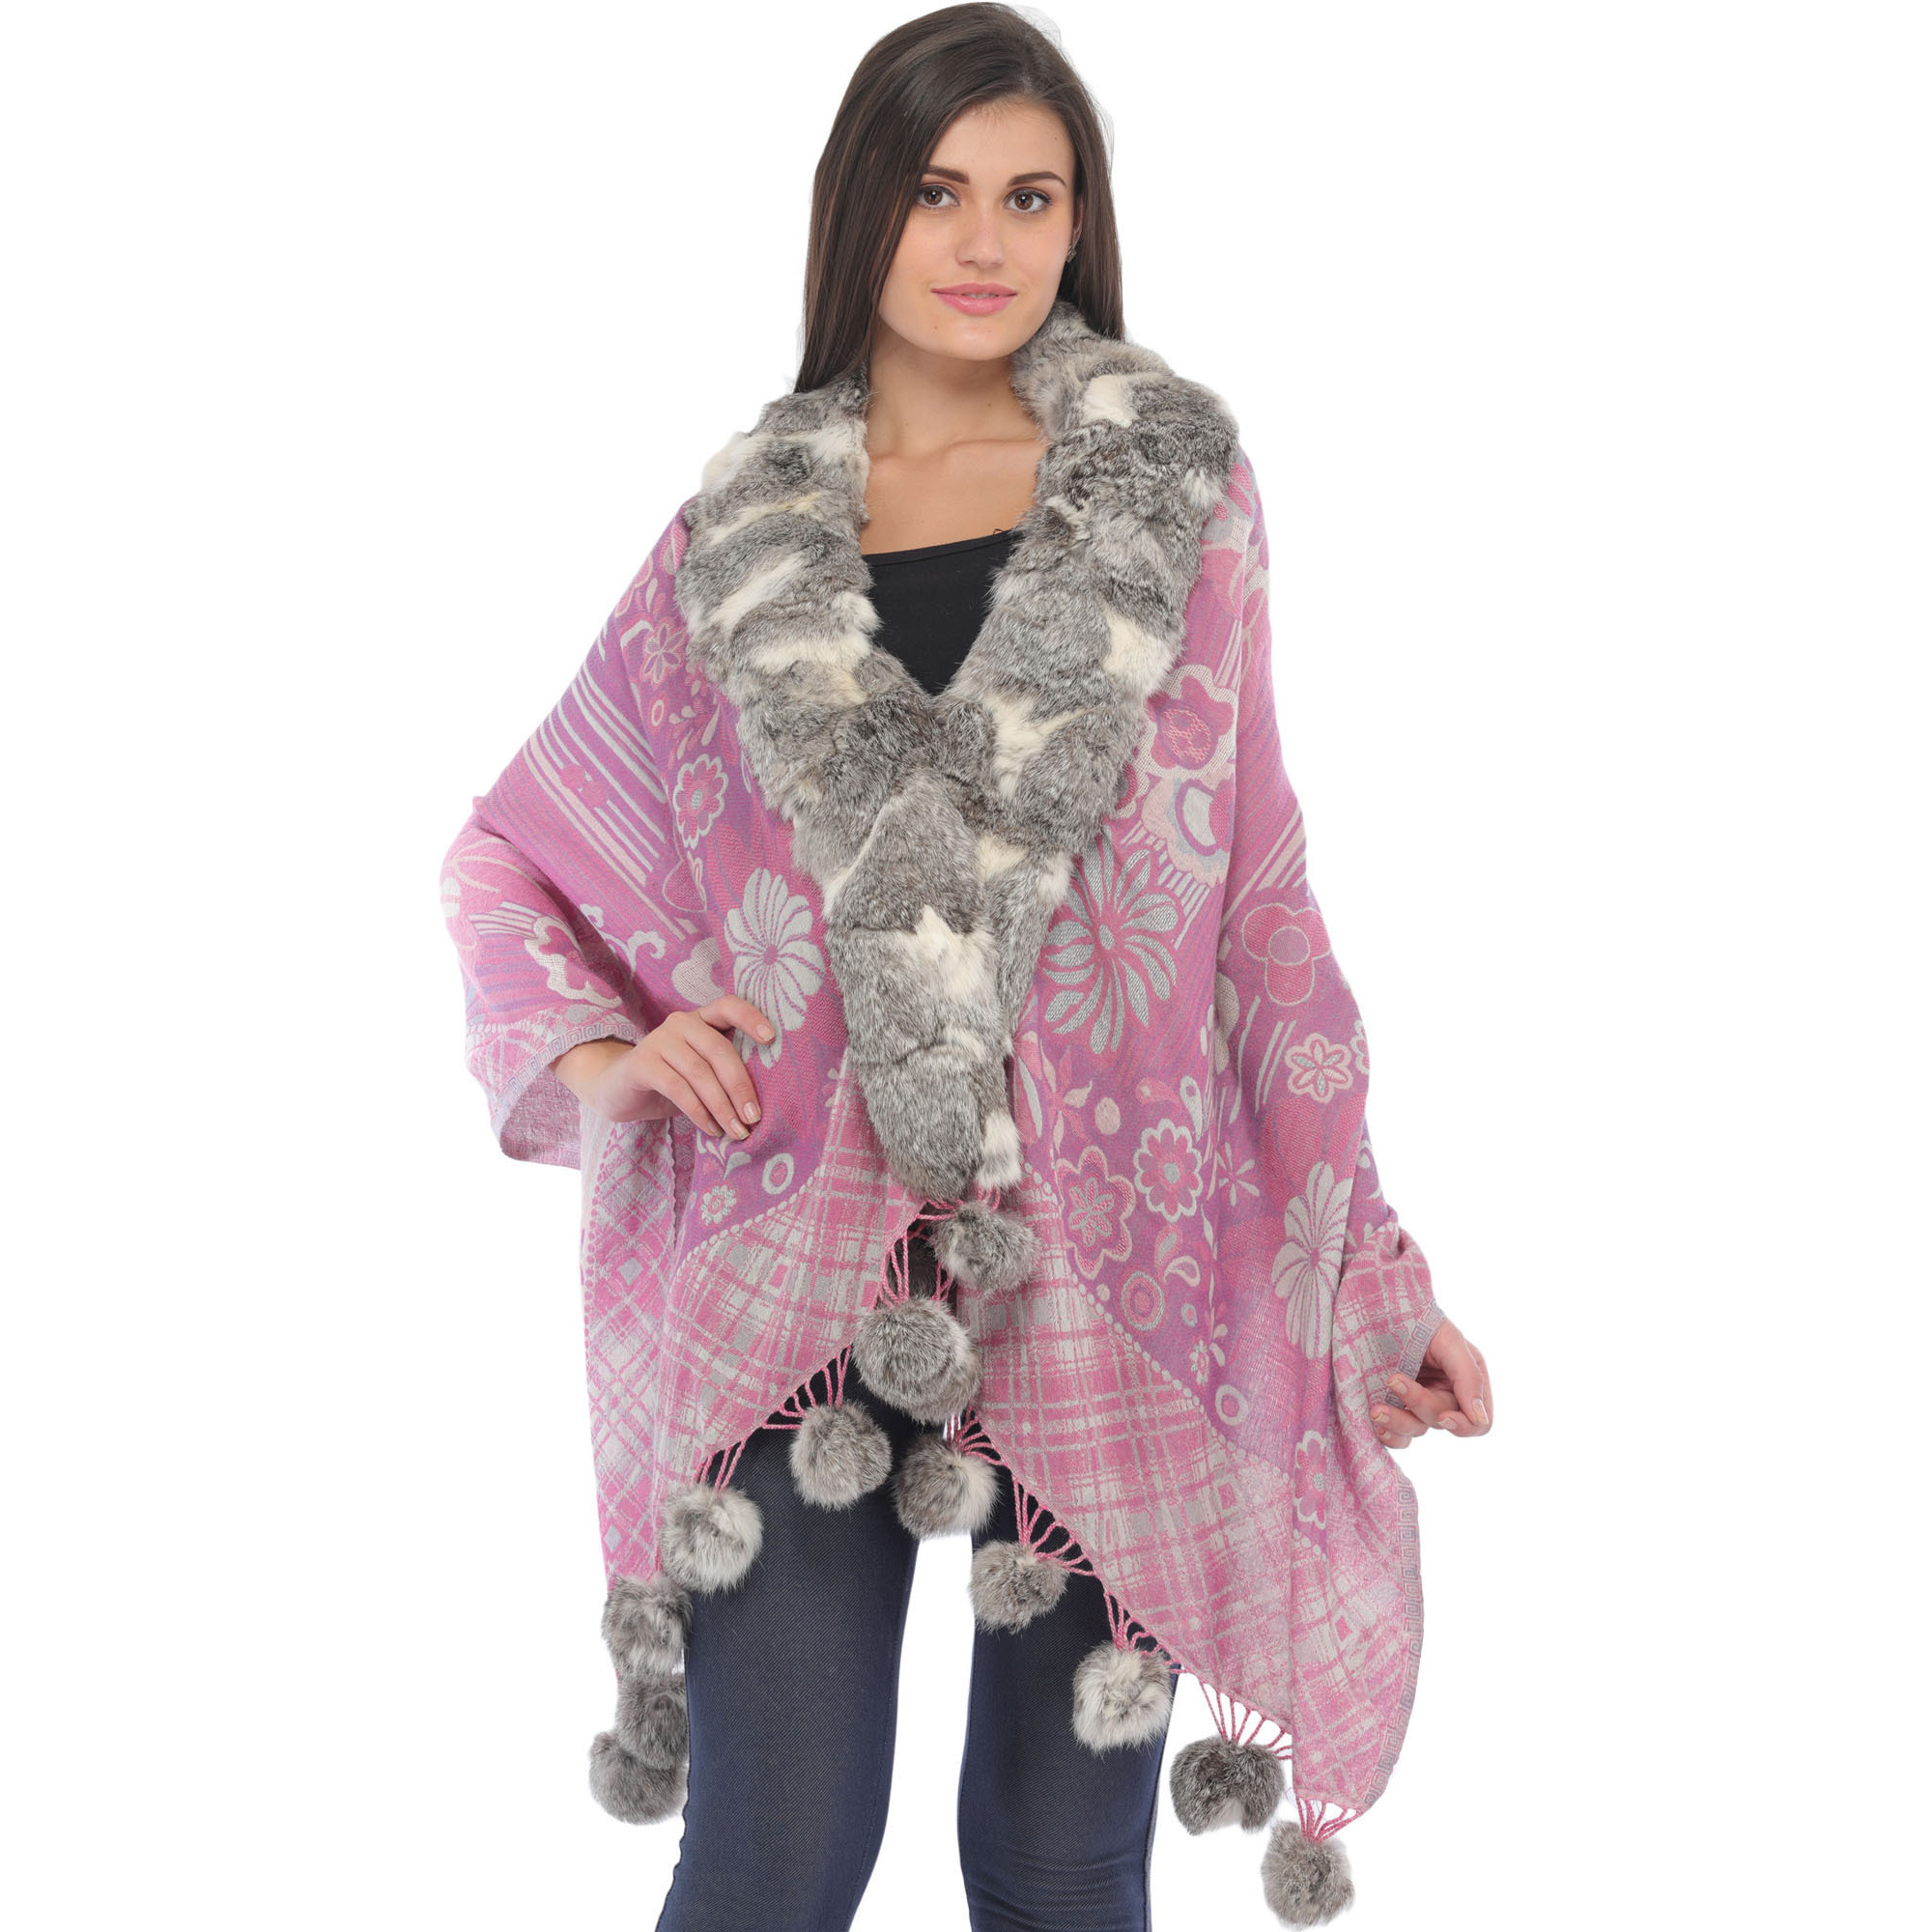 Lavender-Herb Jamawar Wrap with Faux-Fur Collar and Woven Flowers